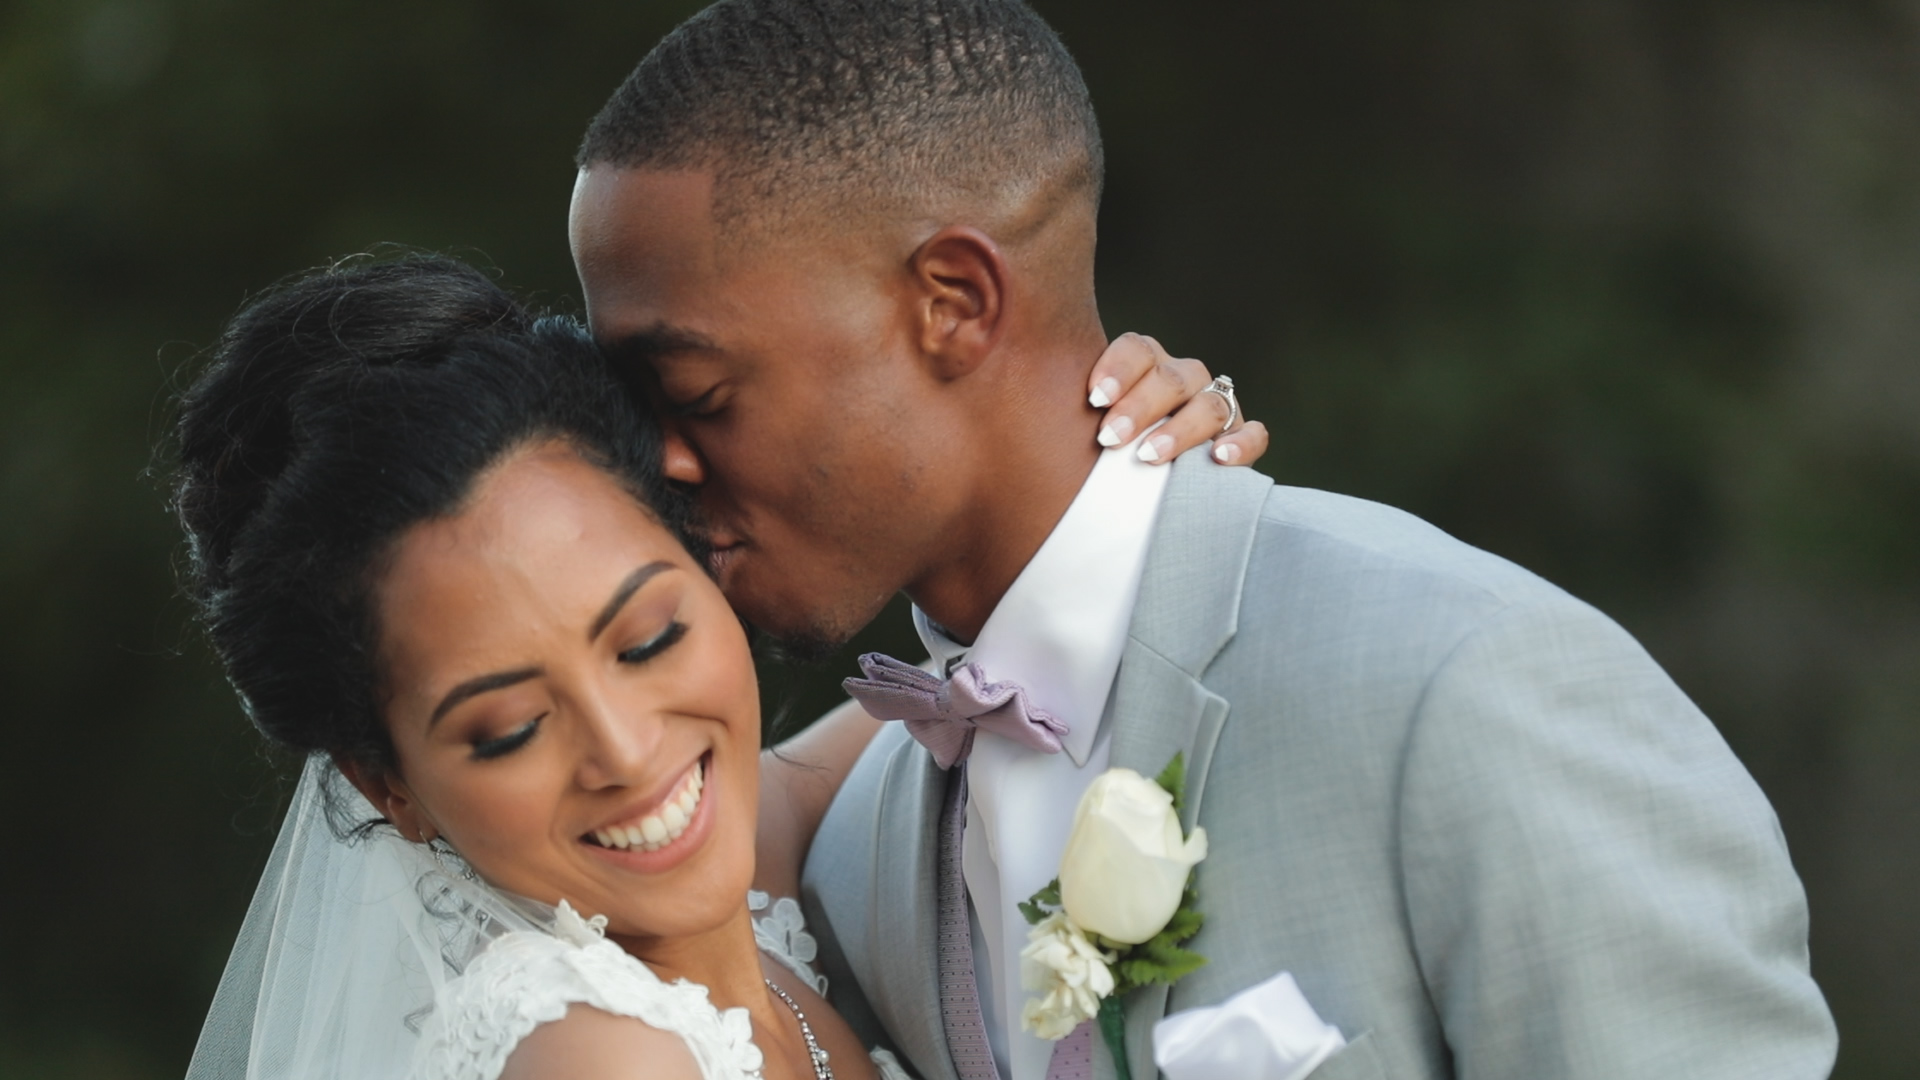 AJ + Kiana | Newport News, Virginia | Kiln Creek Golf Club and Resort